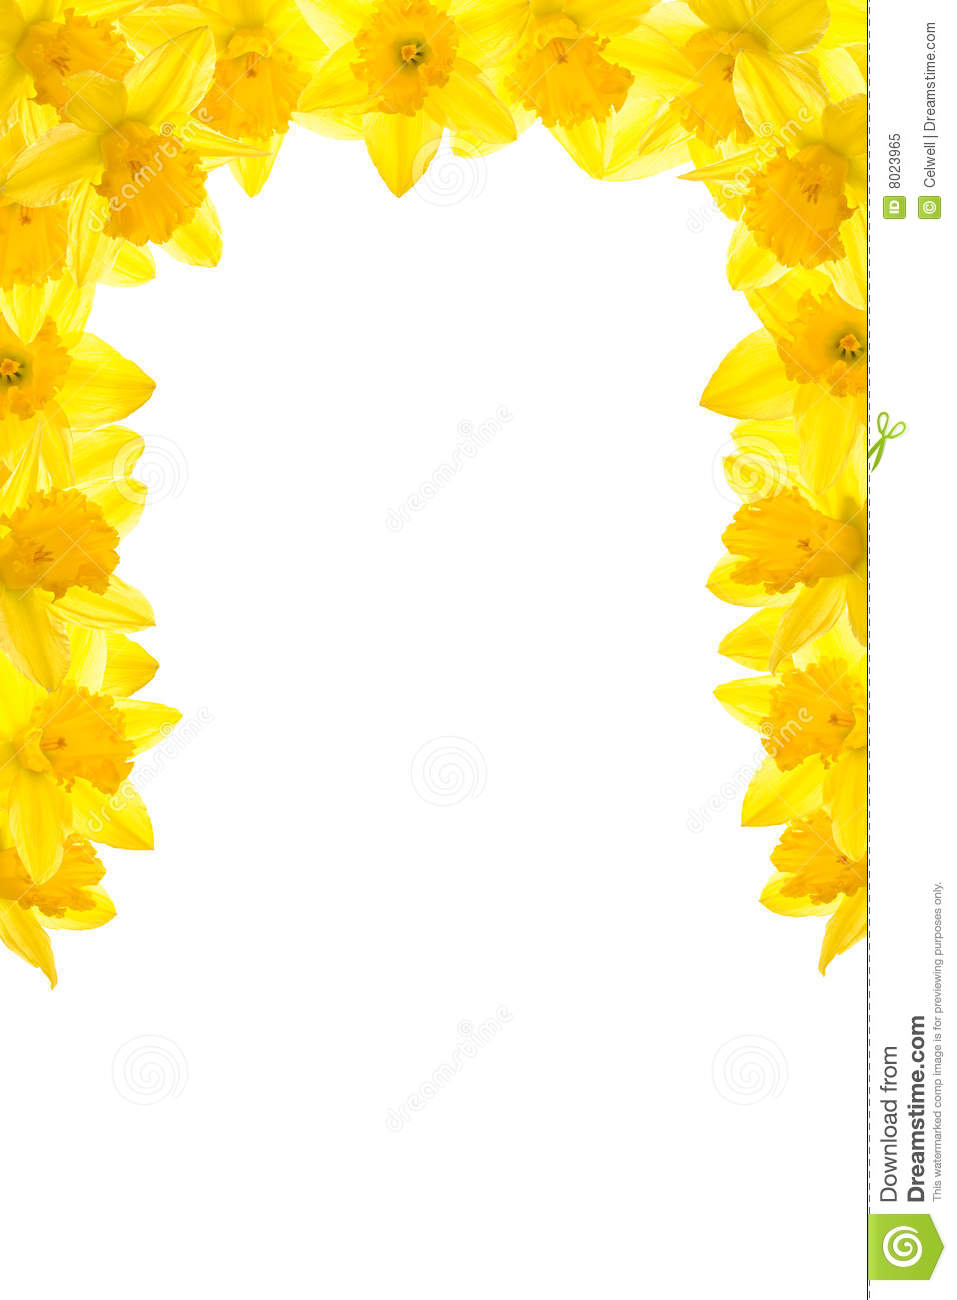 daffodil border stock image image of frame surround 8023965. Black Bedroom Furniture Sets. Home Design Ideas